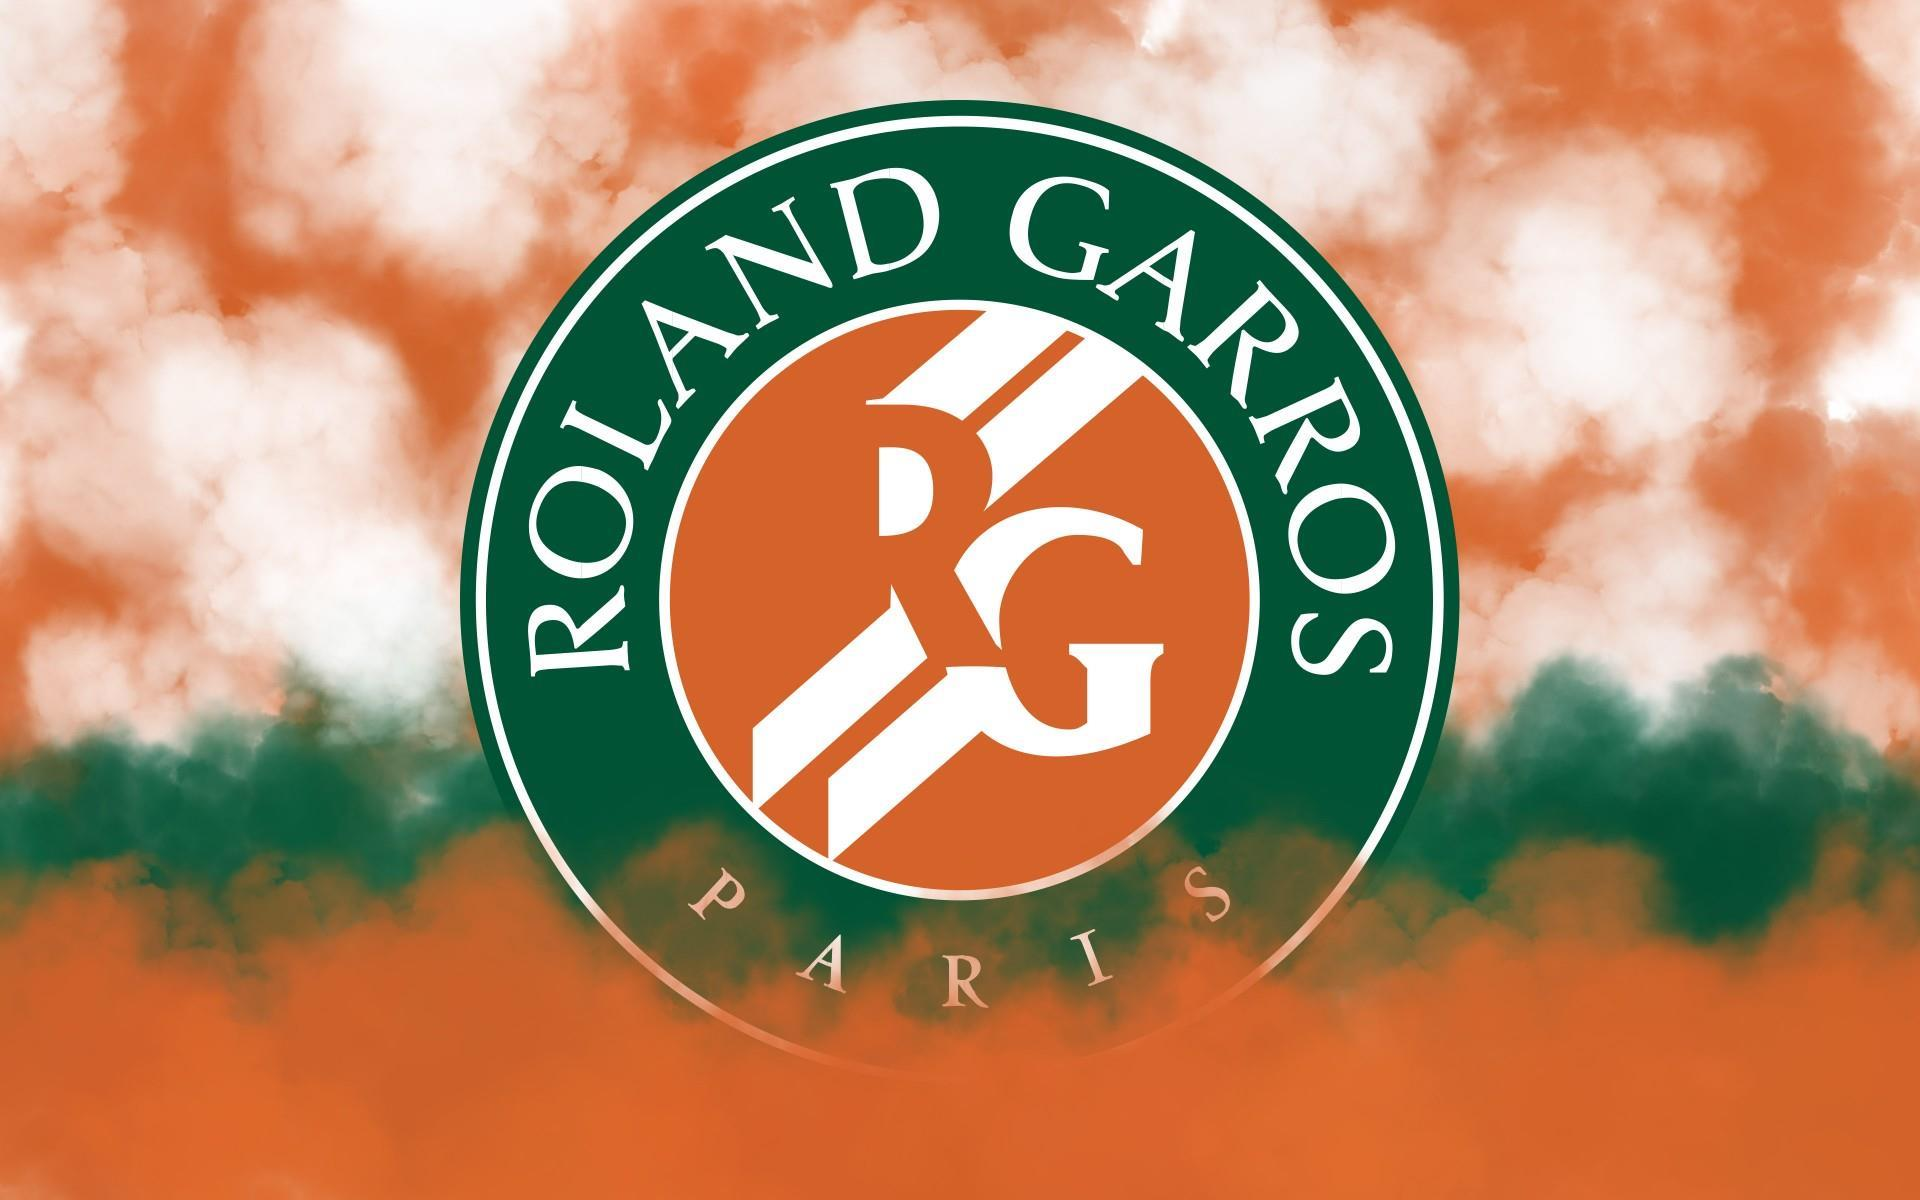 roland-garros-paris-french-open-logo-2014_fond-ecran